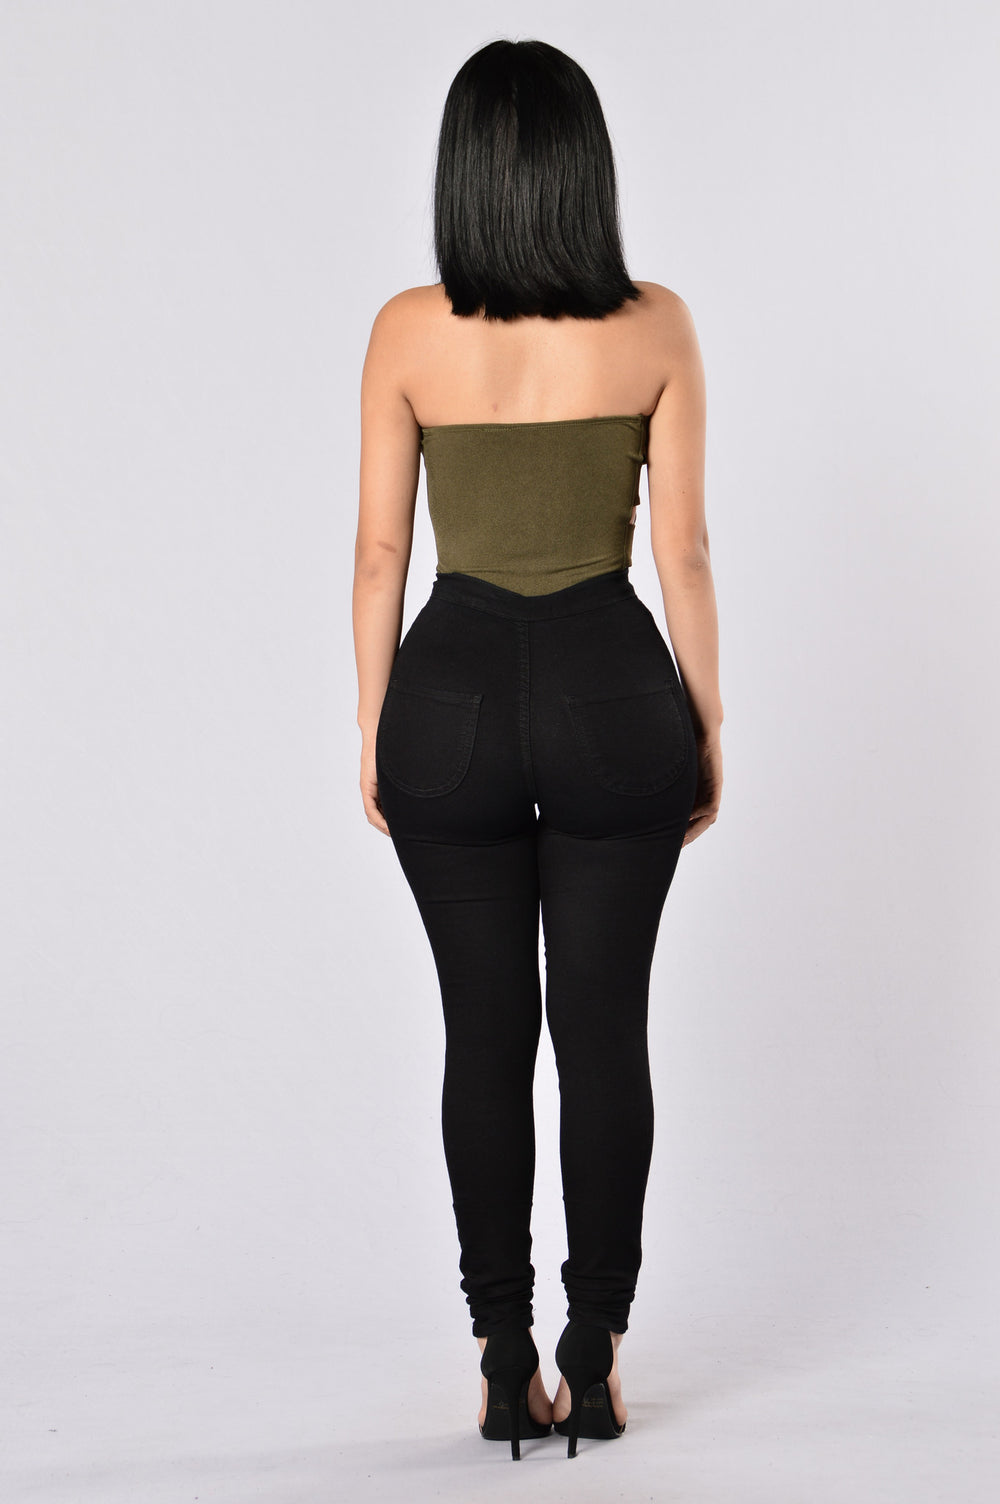 Sexy Side Bodysuit - Olive